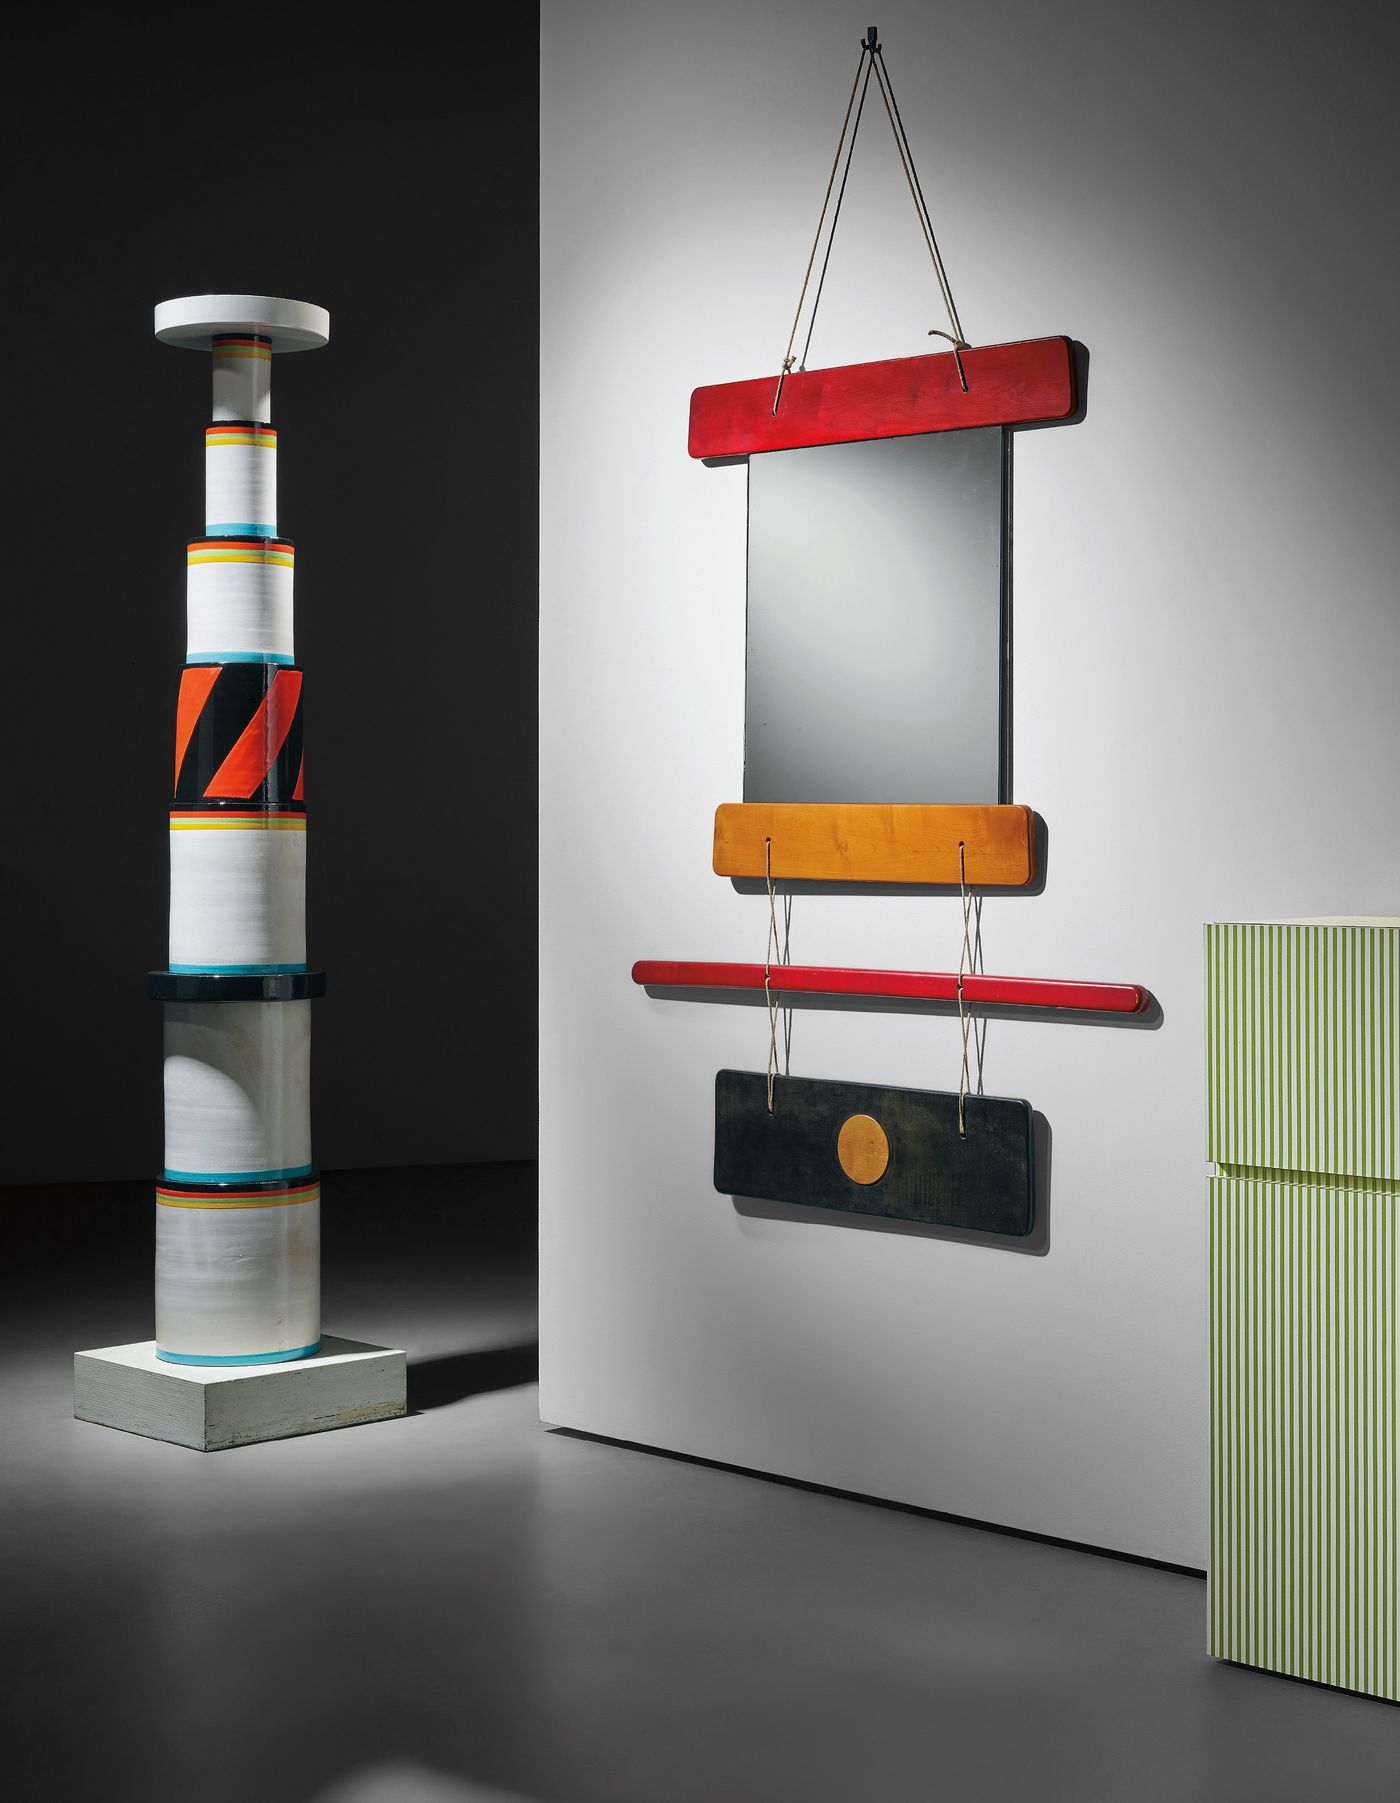 Hear from Fulvio Ferrari and other scholars on a selection of rare, museum-worthy Sottsass furniture and ceramics in our April sale of Important Design.